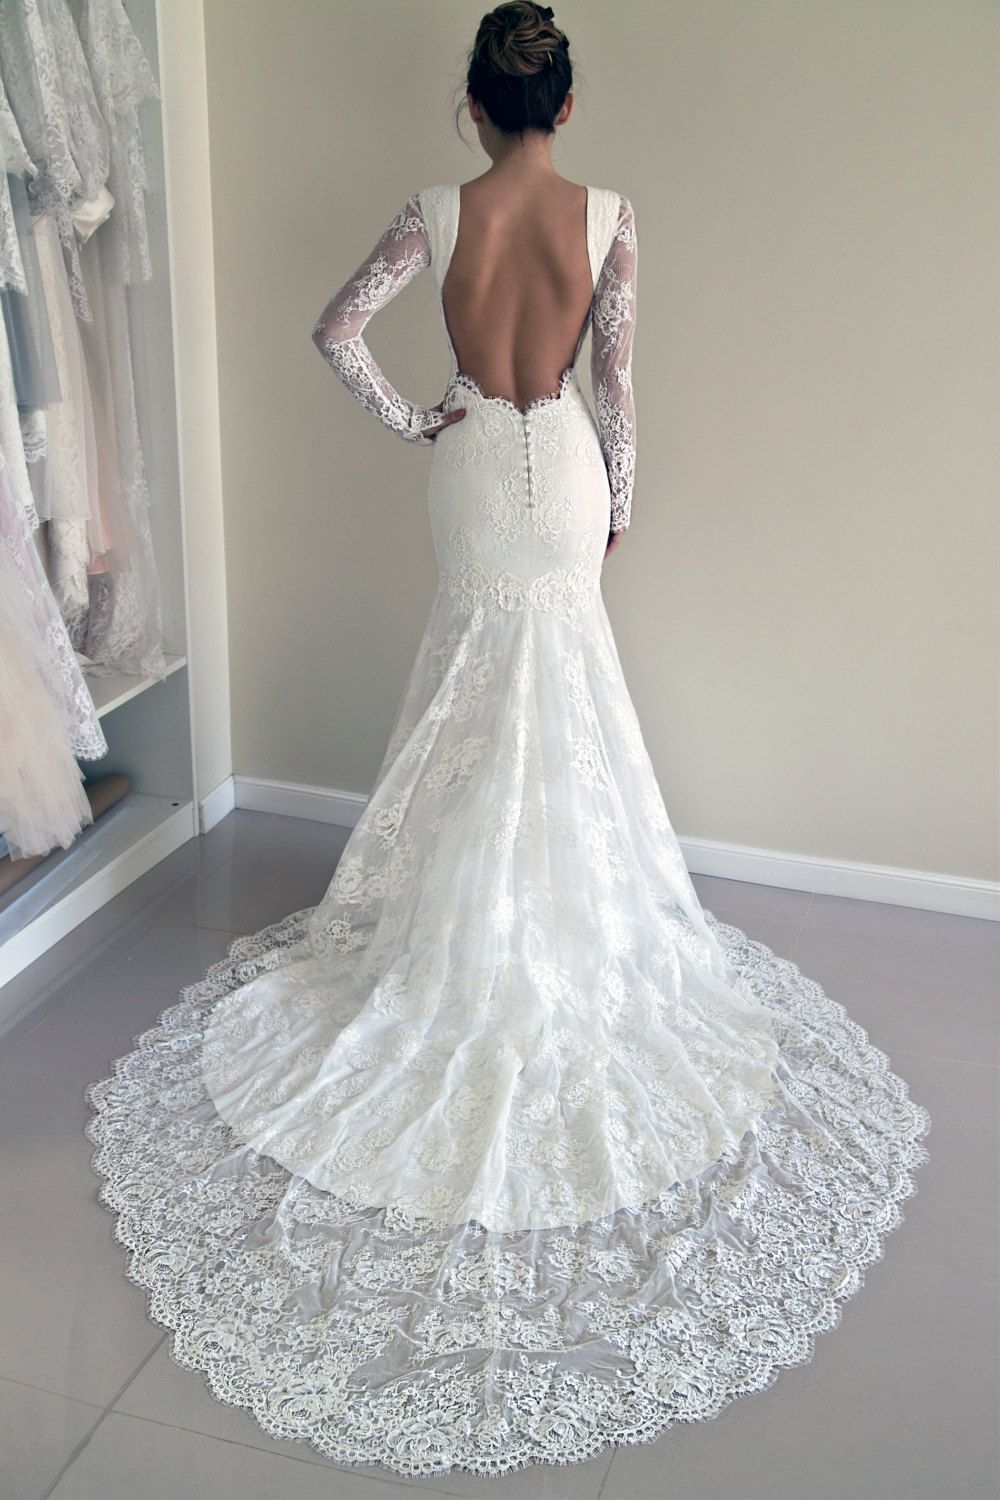 Lace Wedding Dress, Custom Made Wedding Dress, Trumpet Silhouette ...